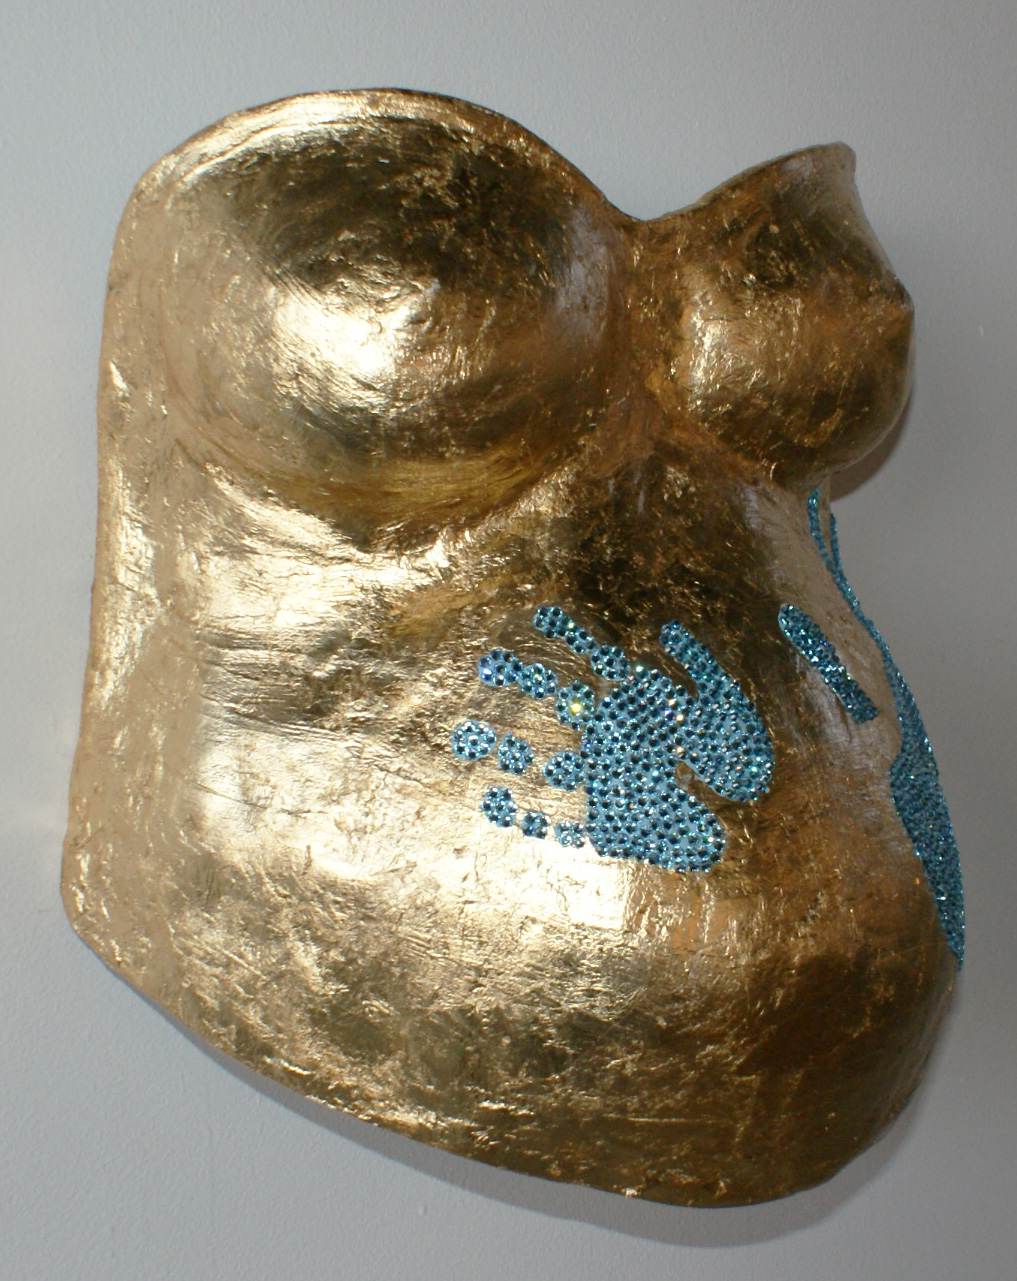 Pregnancy Casting Sculpture by Christina Justiz Roush